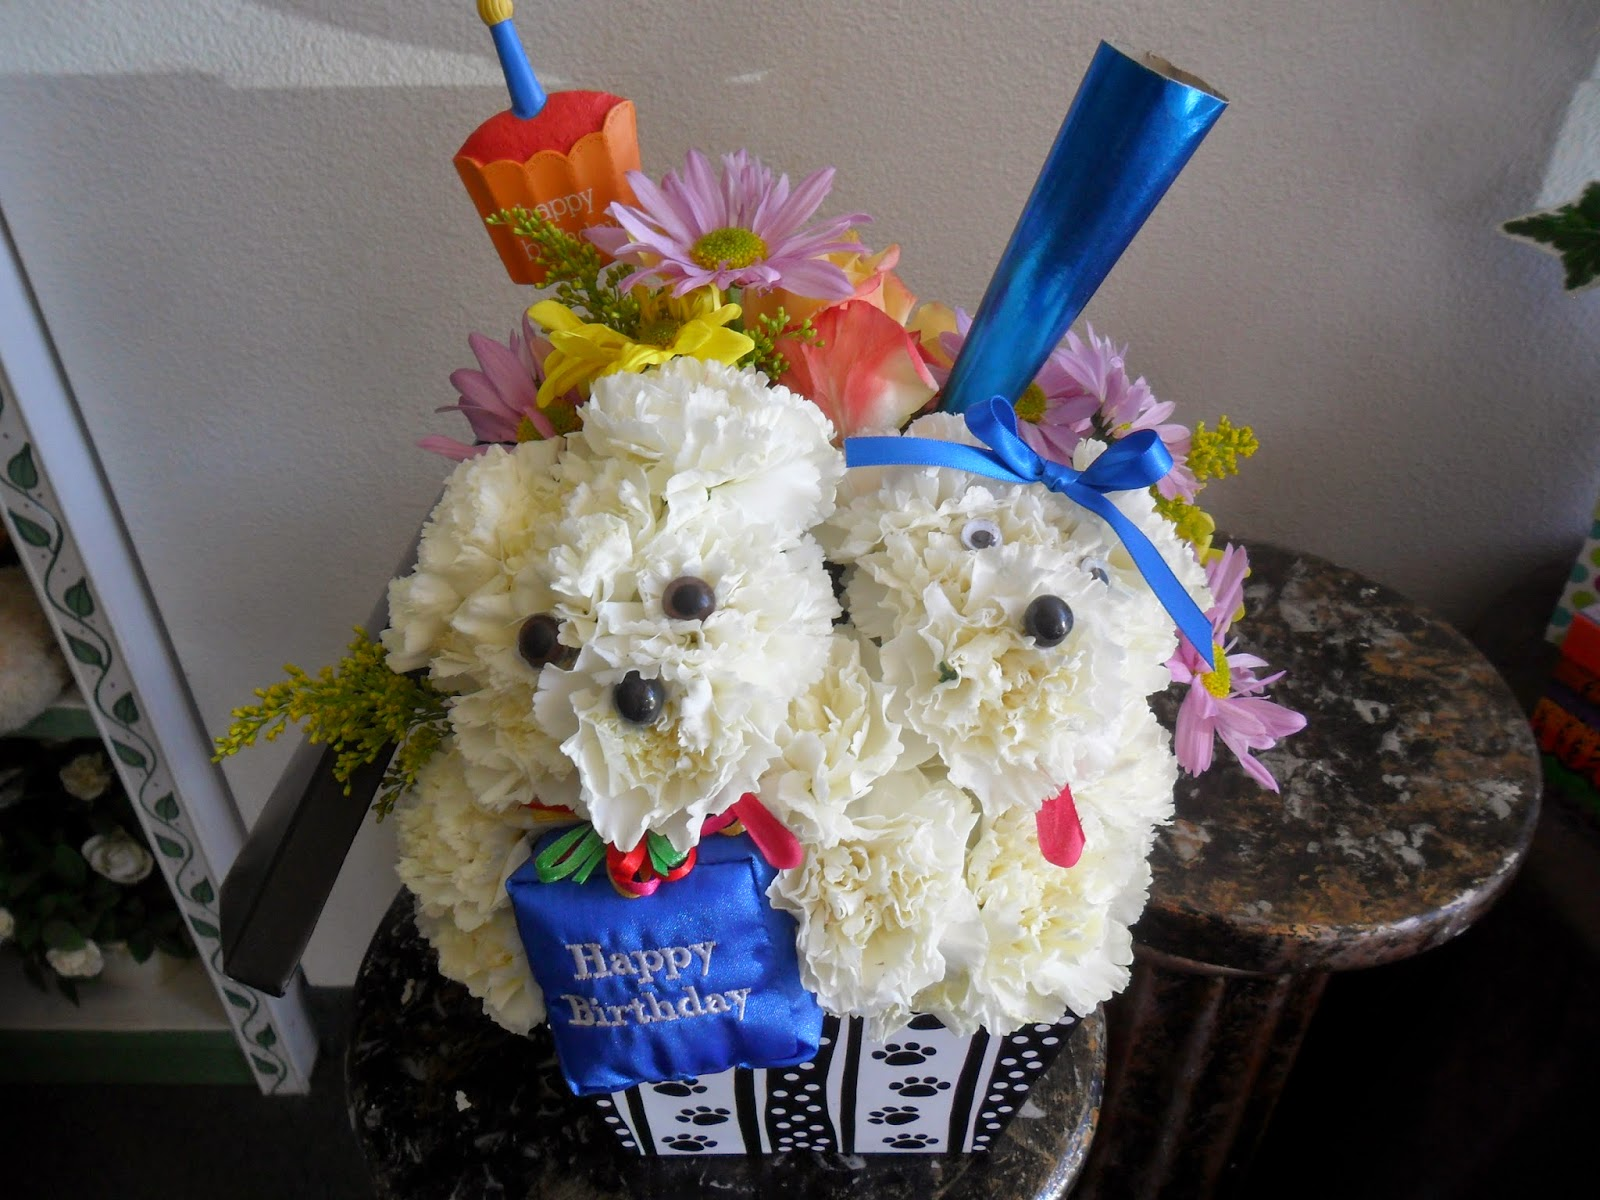 A Beautiful Bouquet Florist Providing Birthday Floral Arrangement